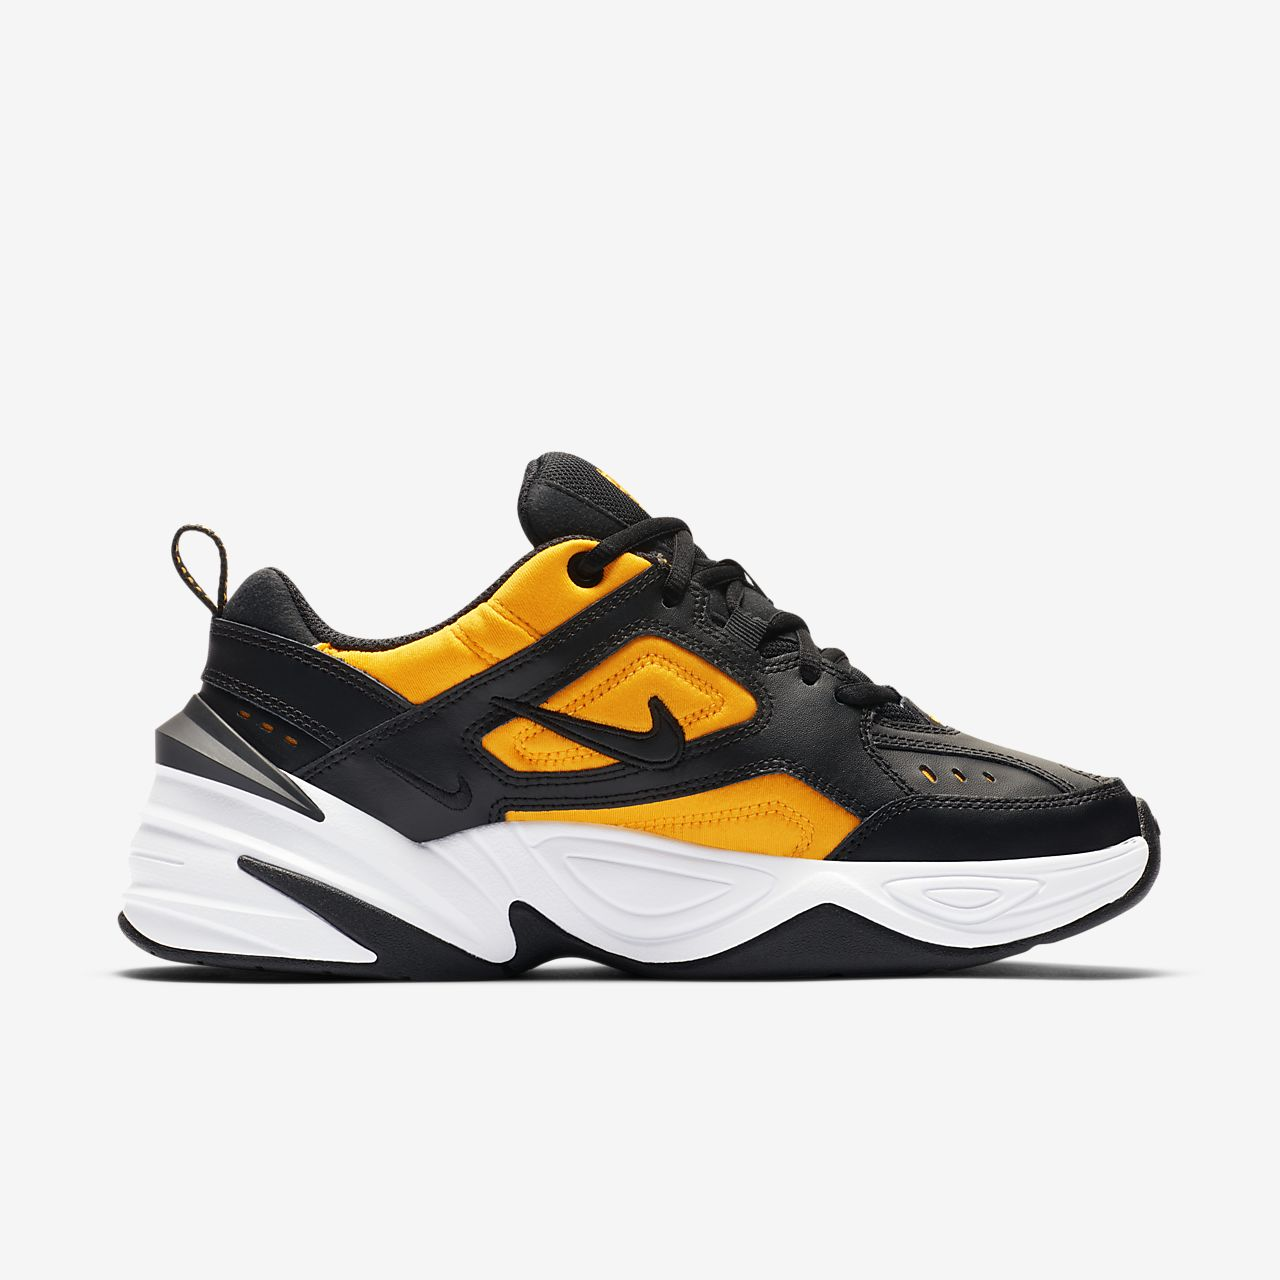 pretty nice fa04e 1d488 Low Resolution Chaussure Nike M2K Tekno Chaussure Nike M2K Tekno